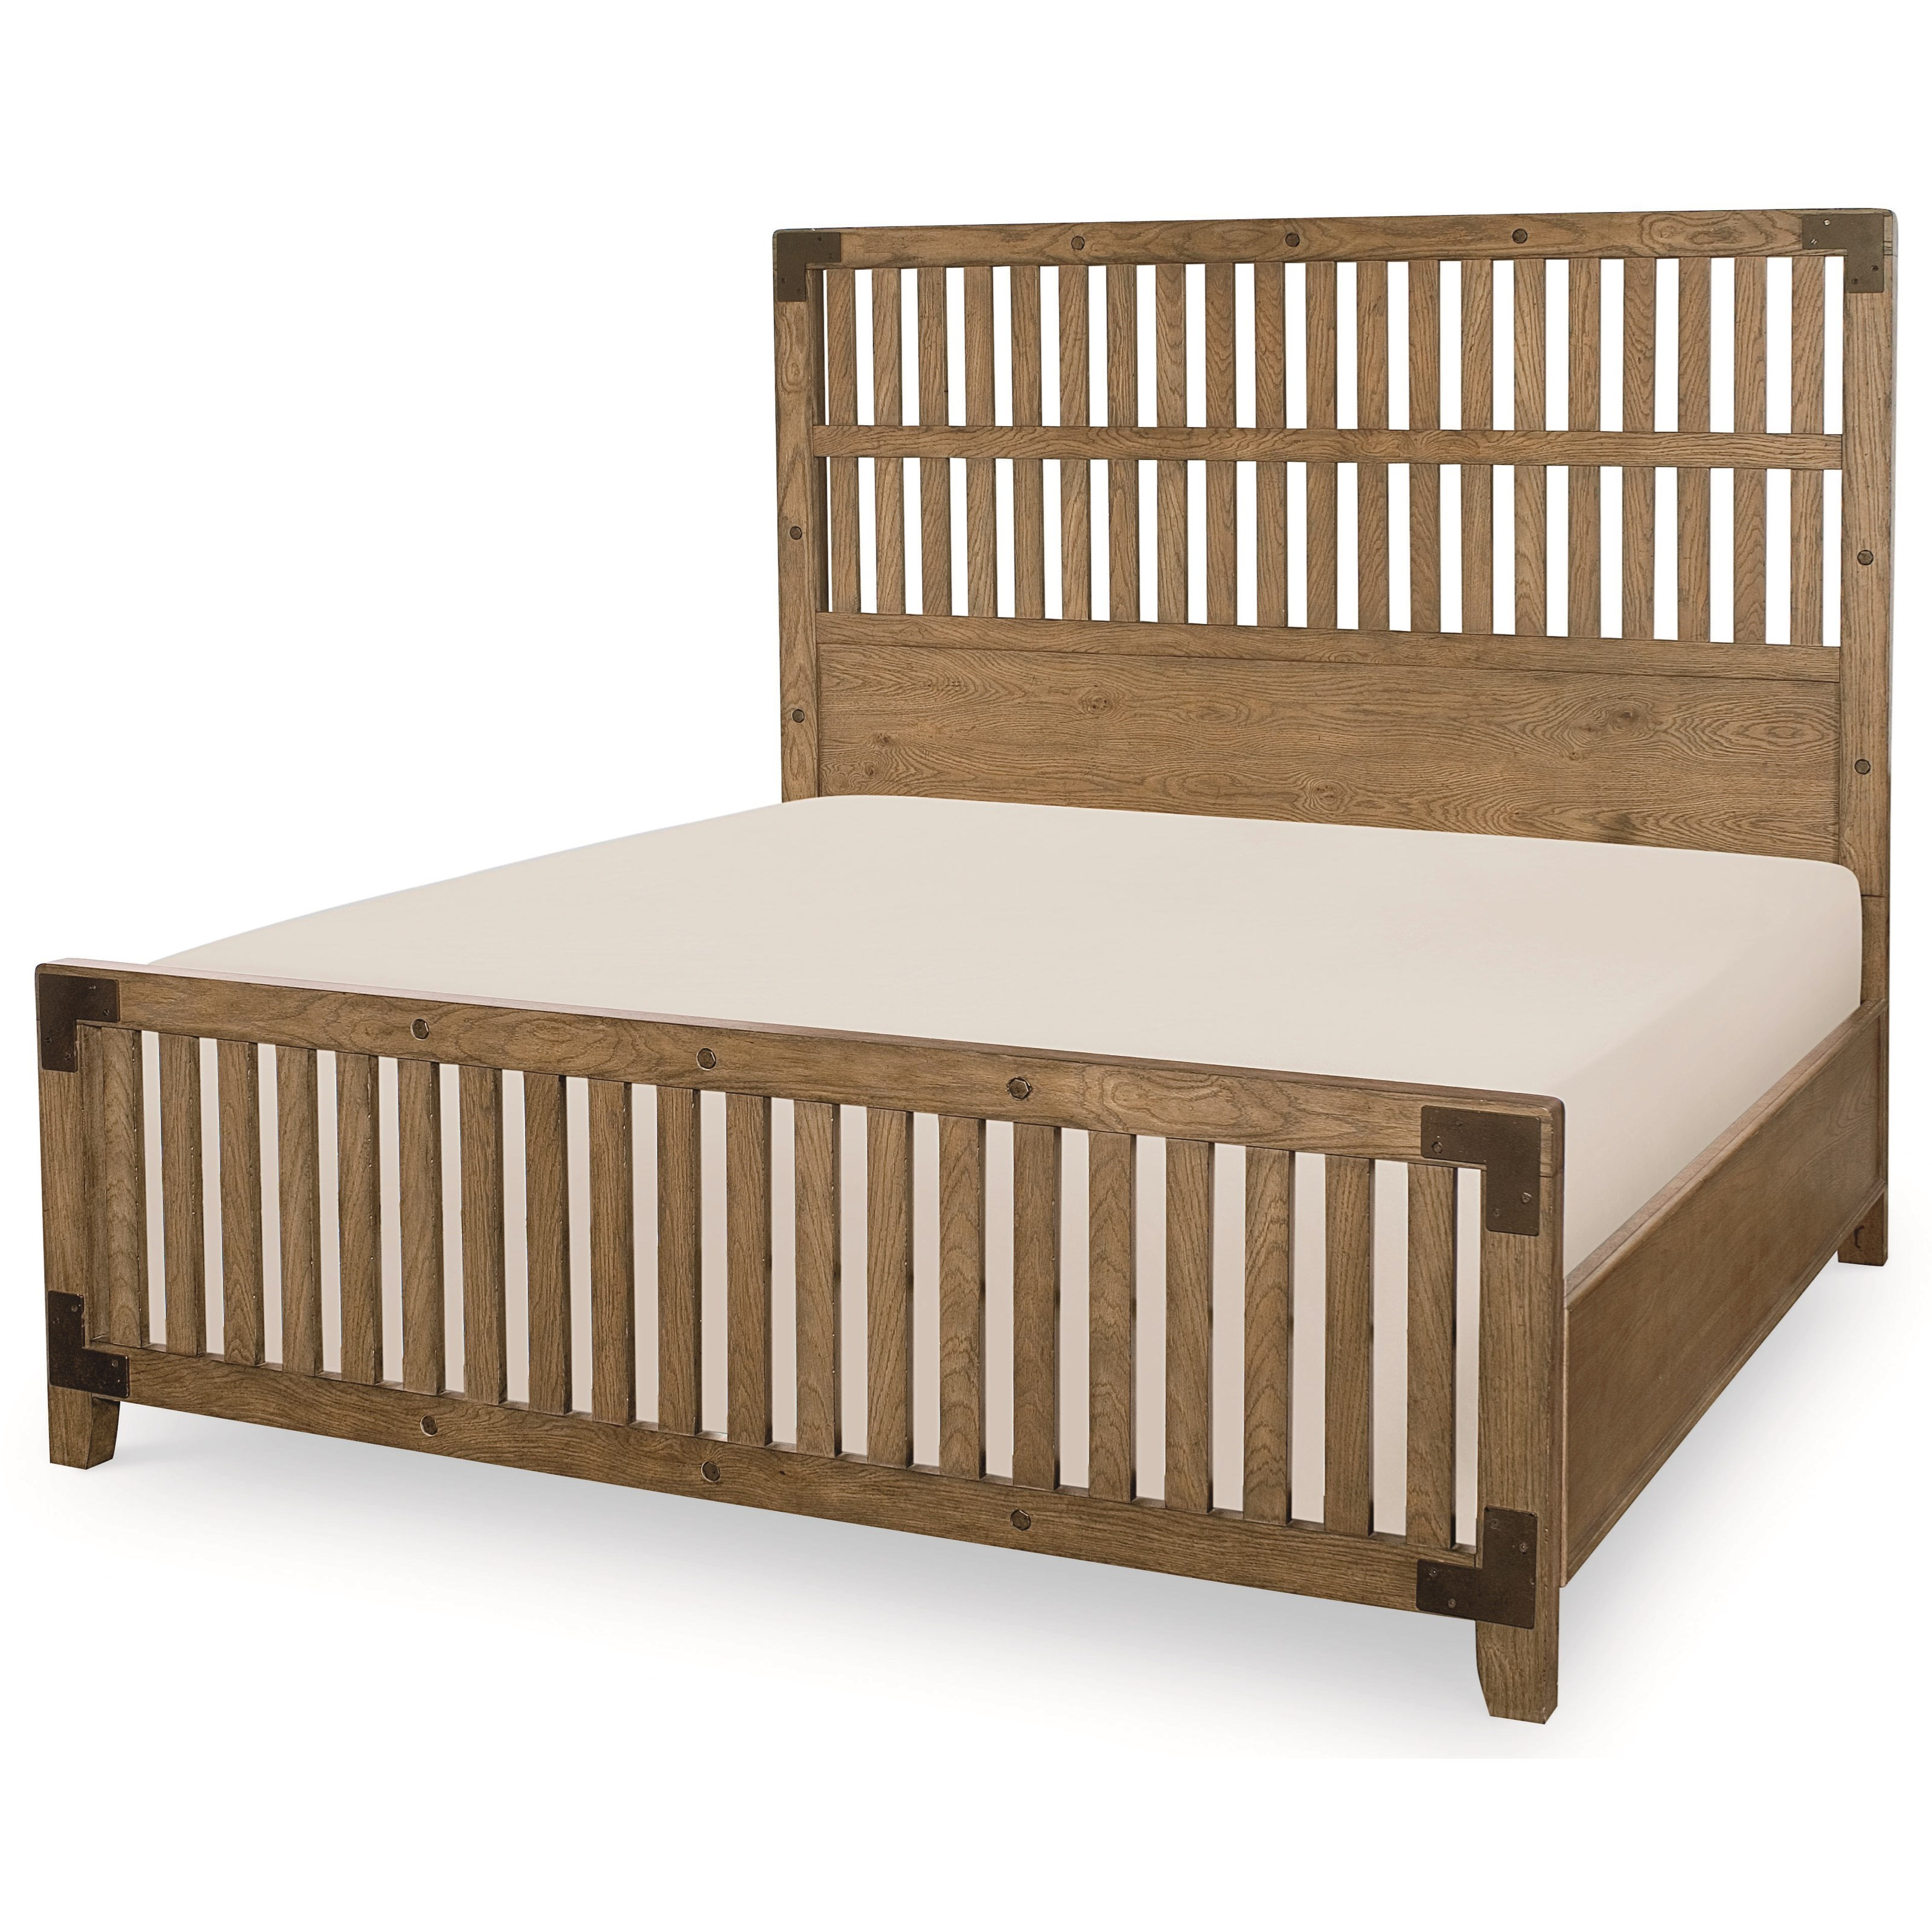 Legacy Classic Metalworks King Complete Wood Gate Bed - Item Number: 5610-4206K